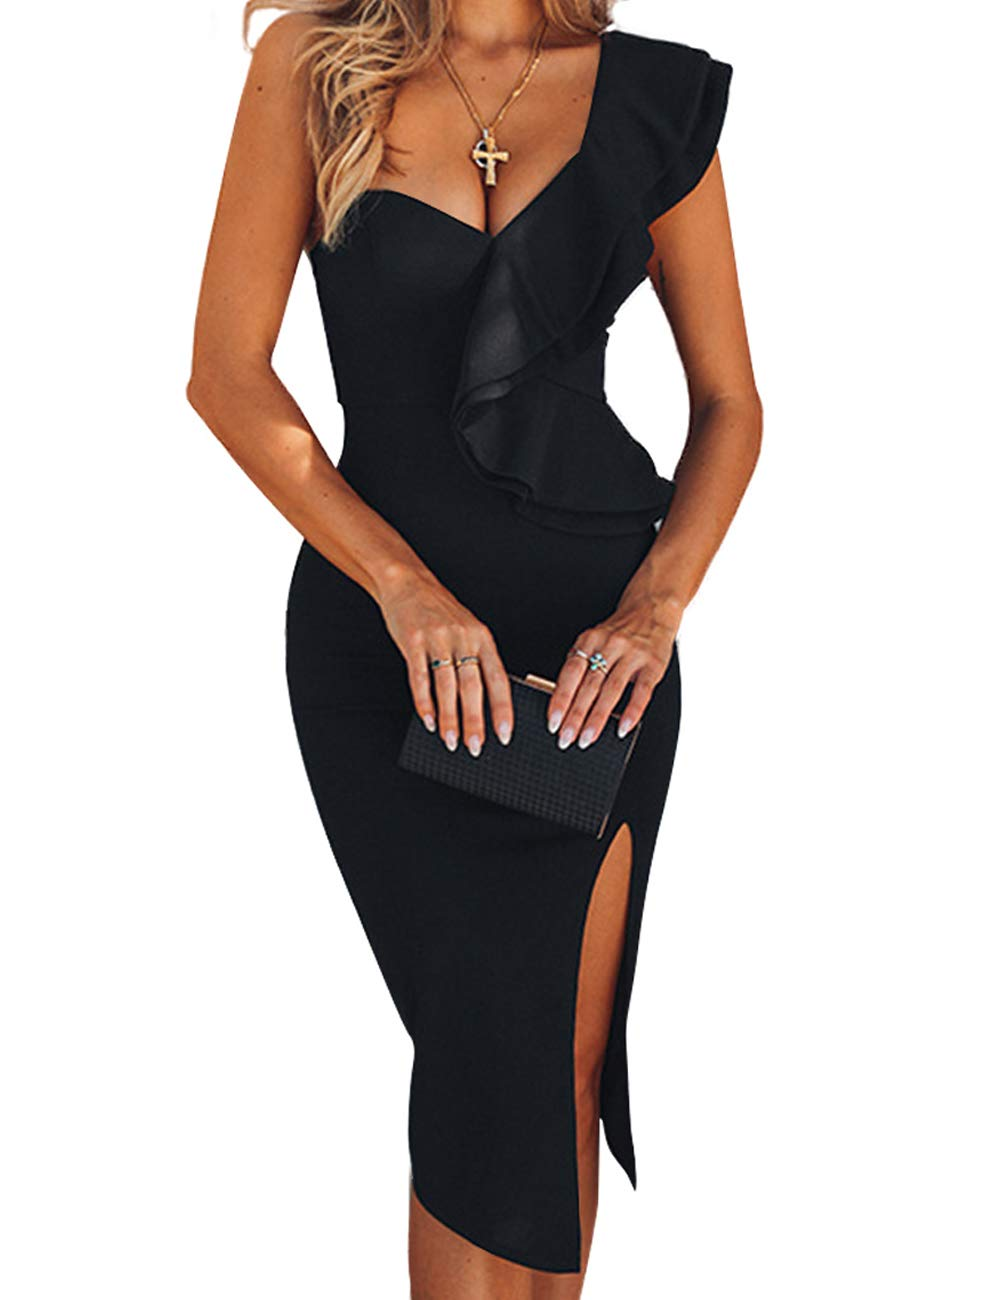 Party Dresses - Women's One Shoulder Sleeveless Knee Length Side Split Fashion Bandage Dress